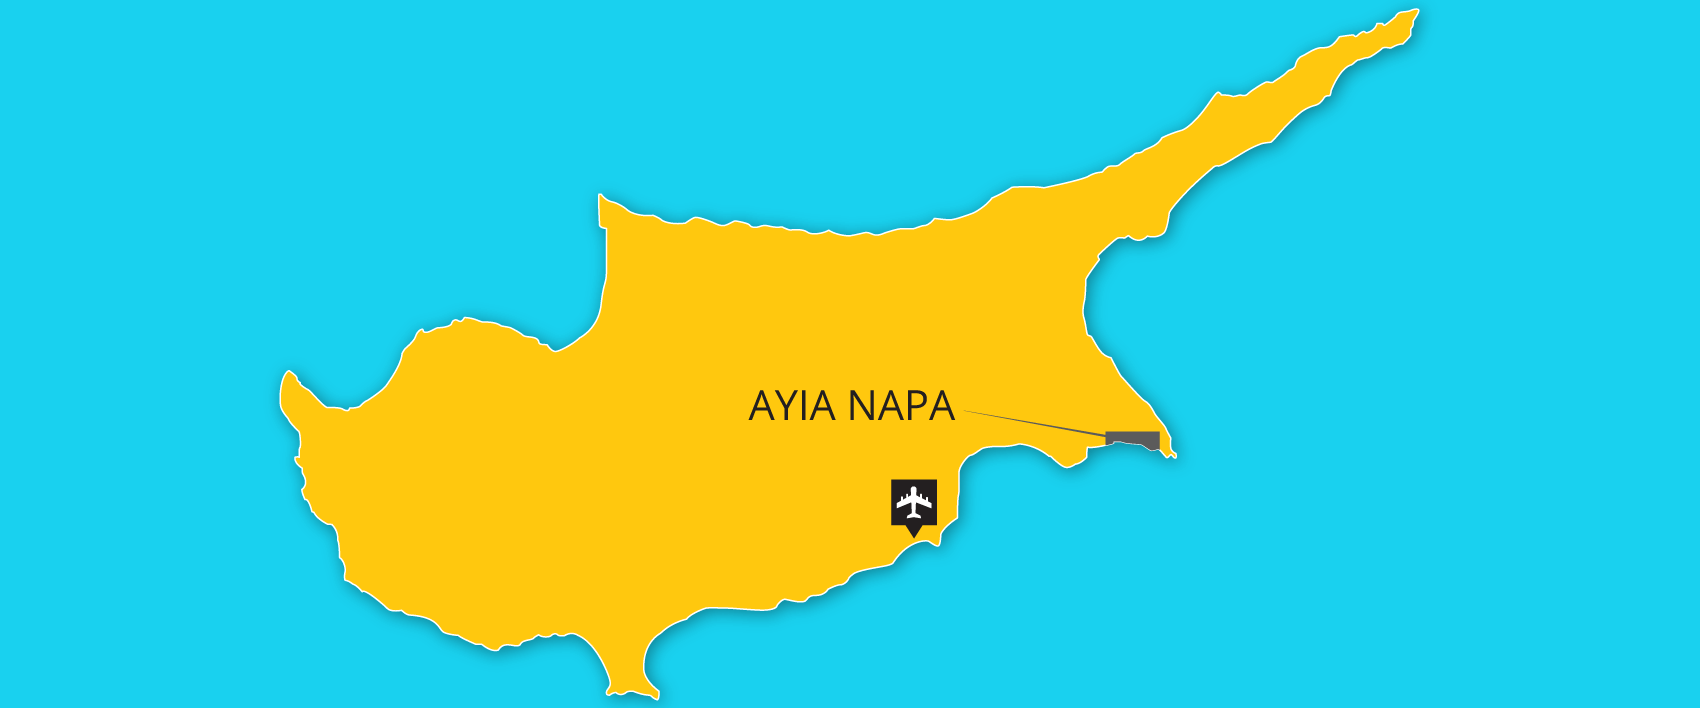 Ayia Napa transfers from airport